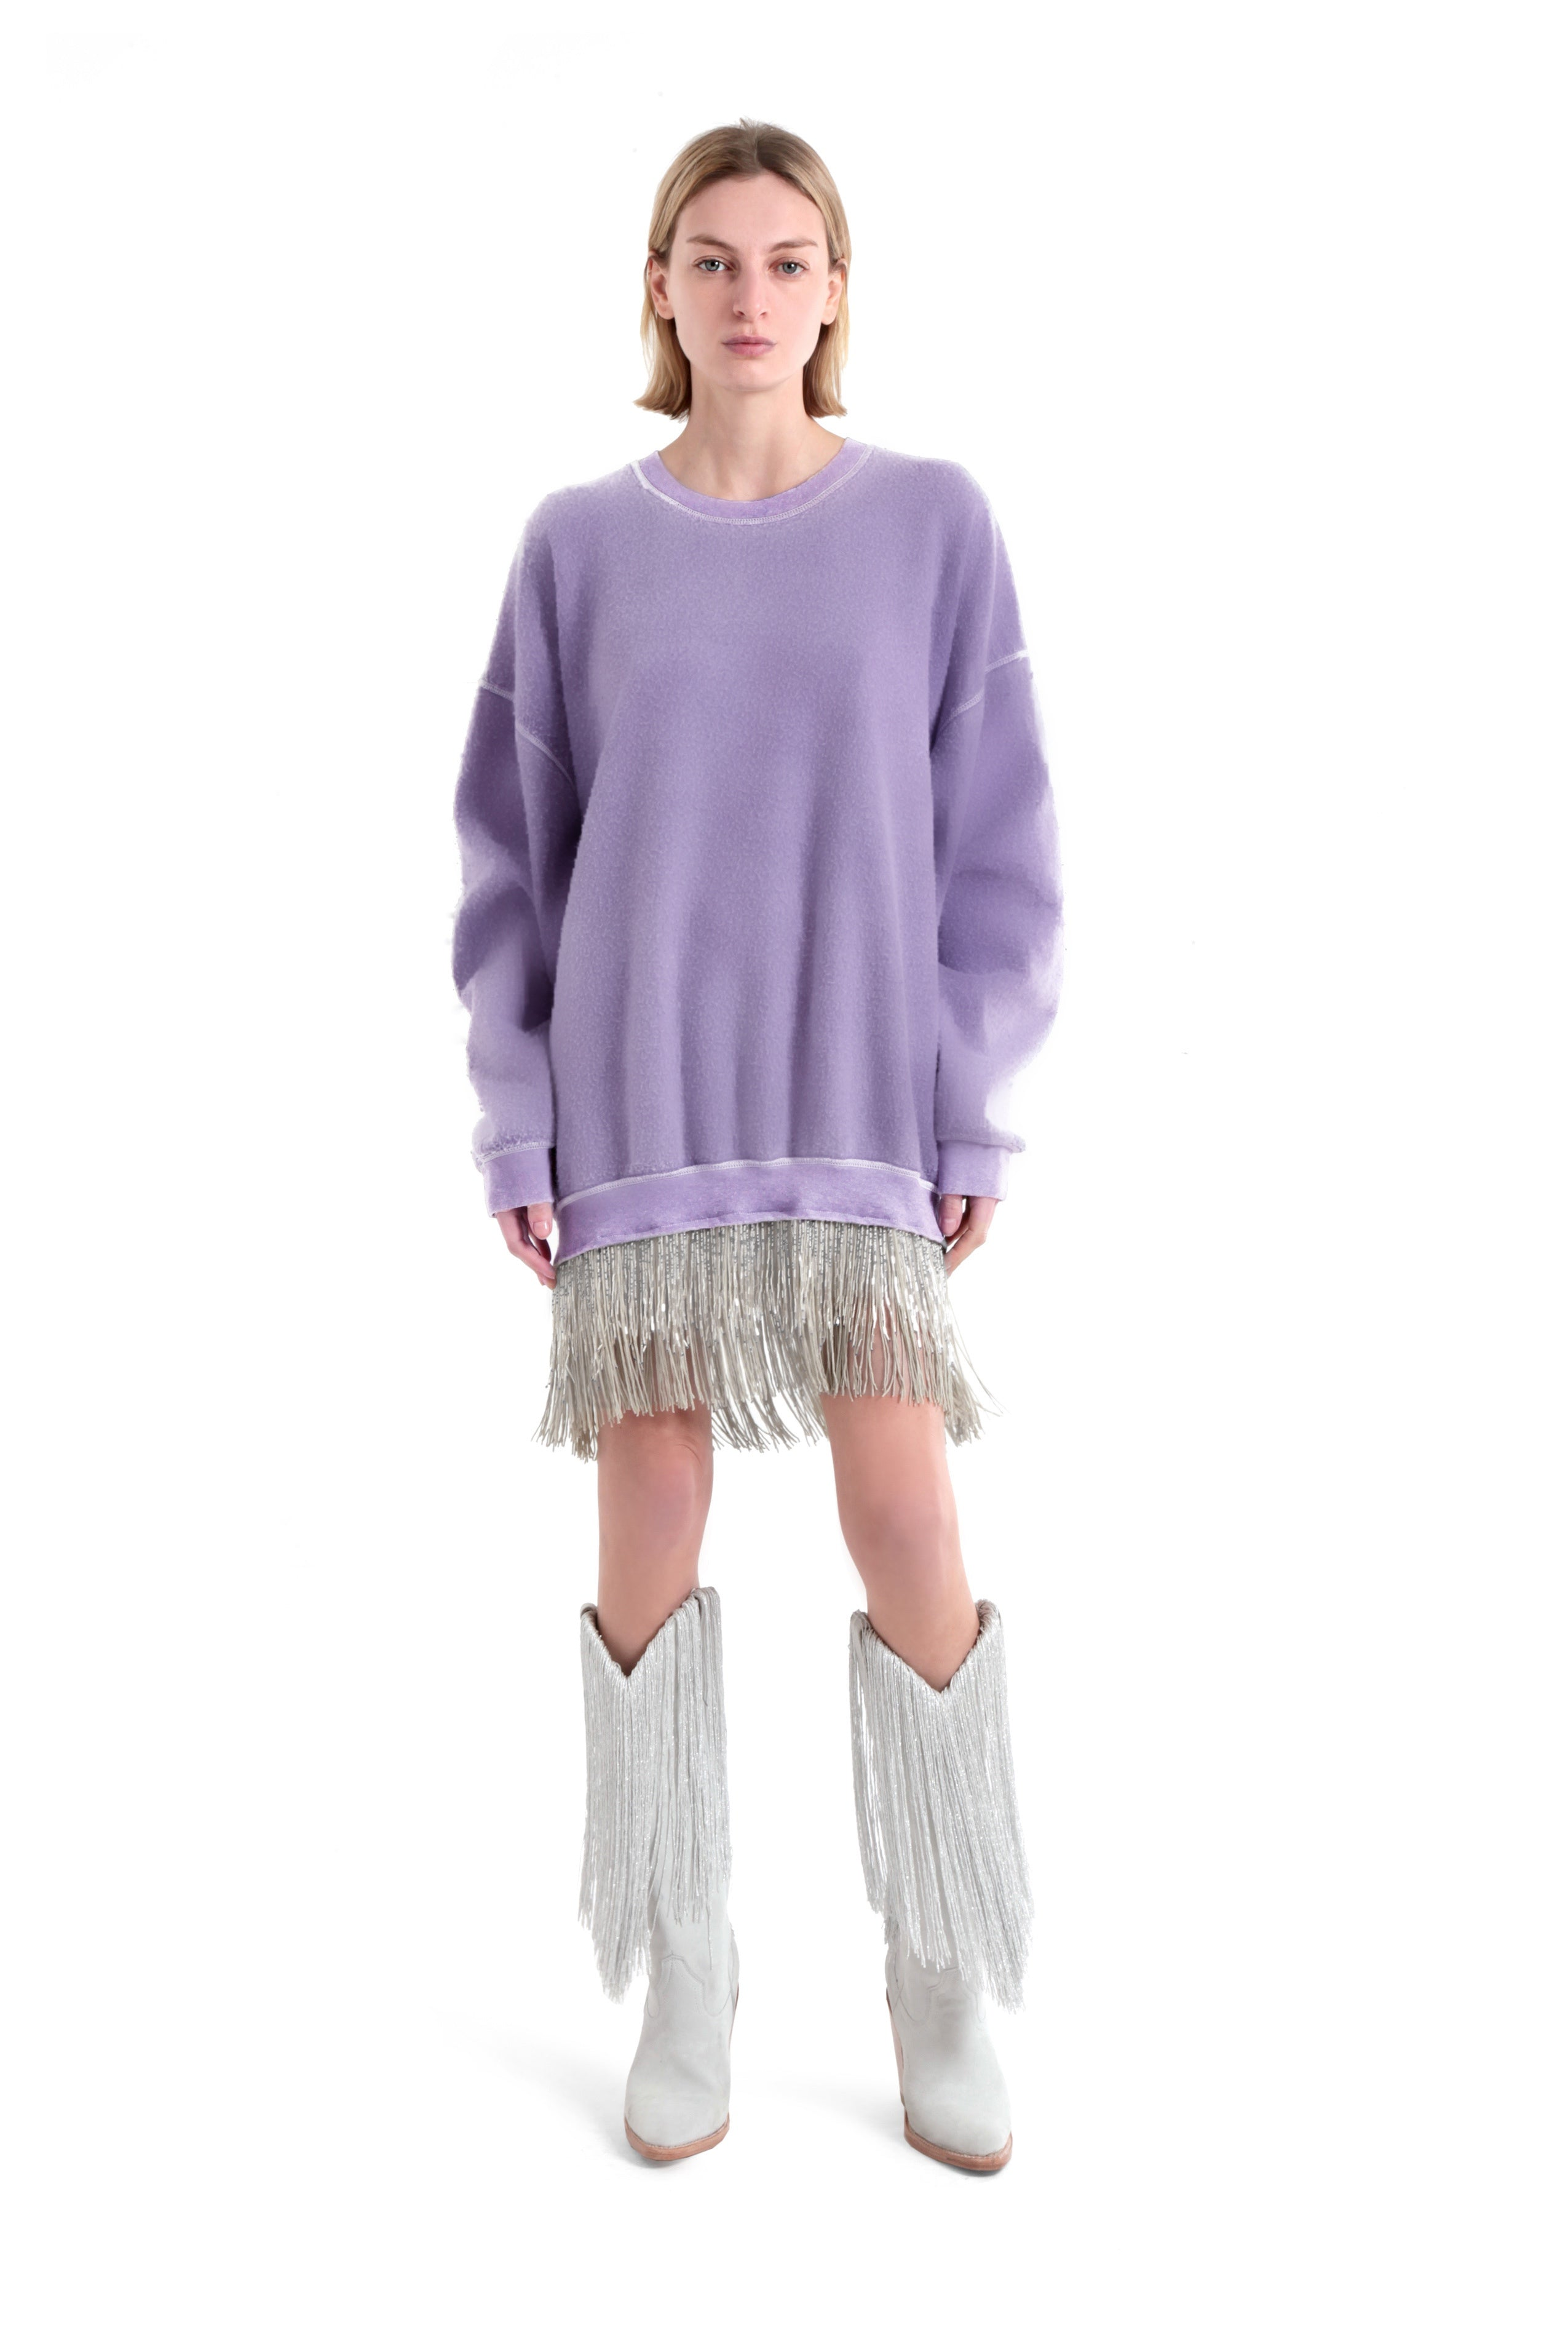 Sweatshirt Dress with Beaded Fringe